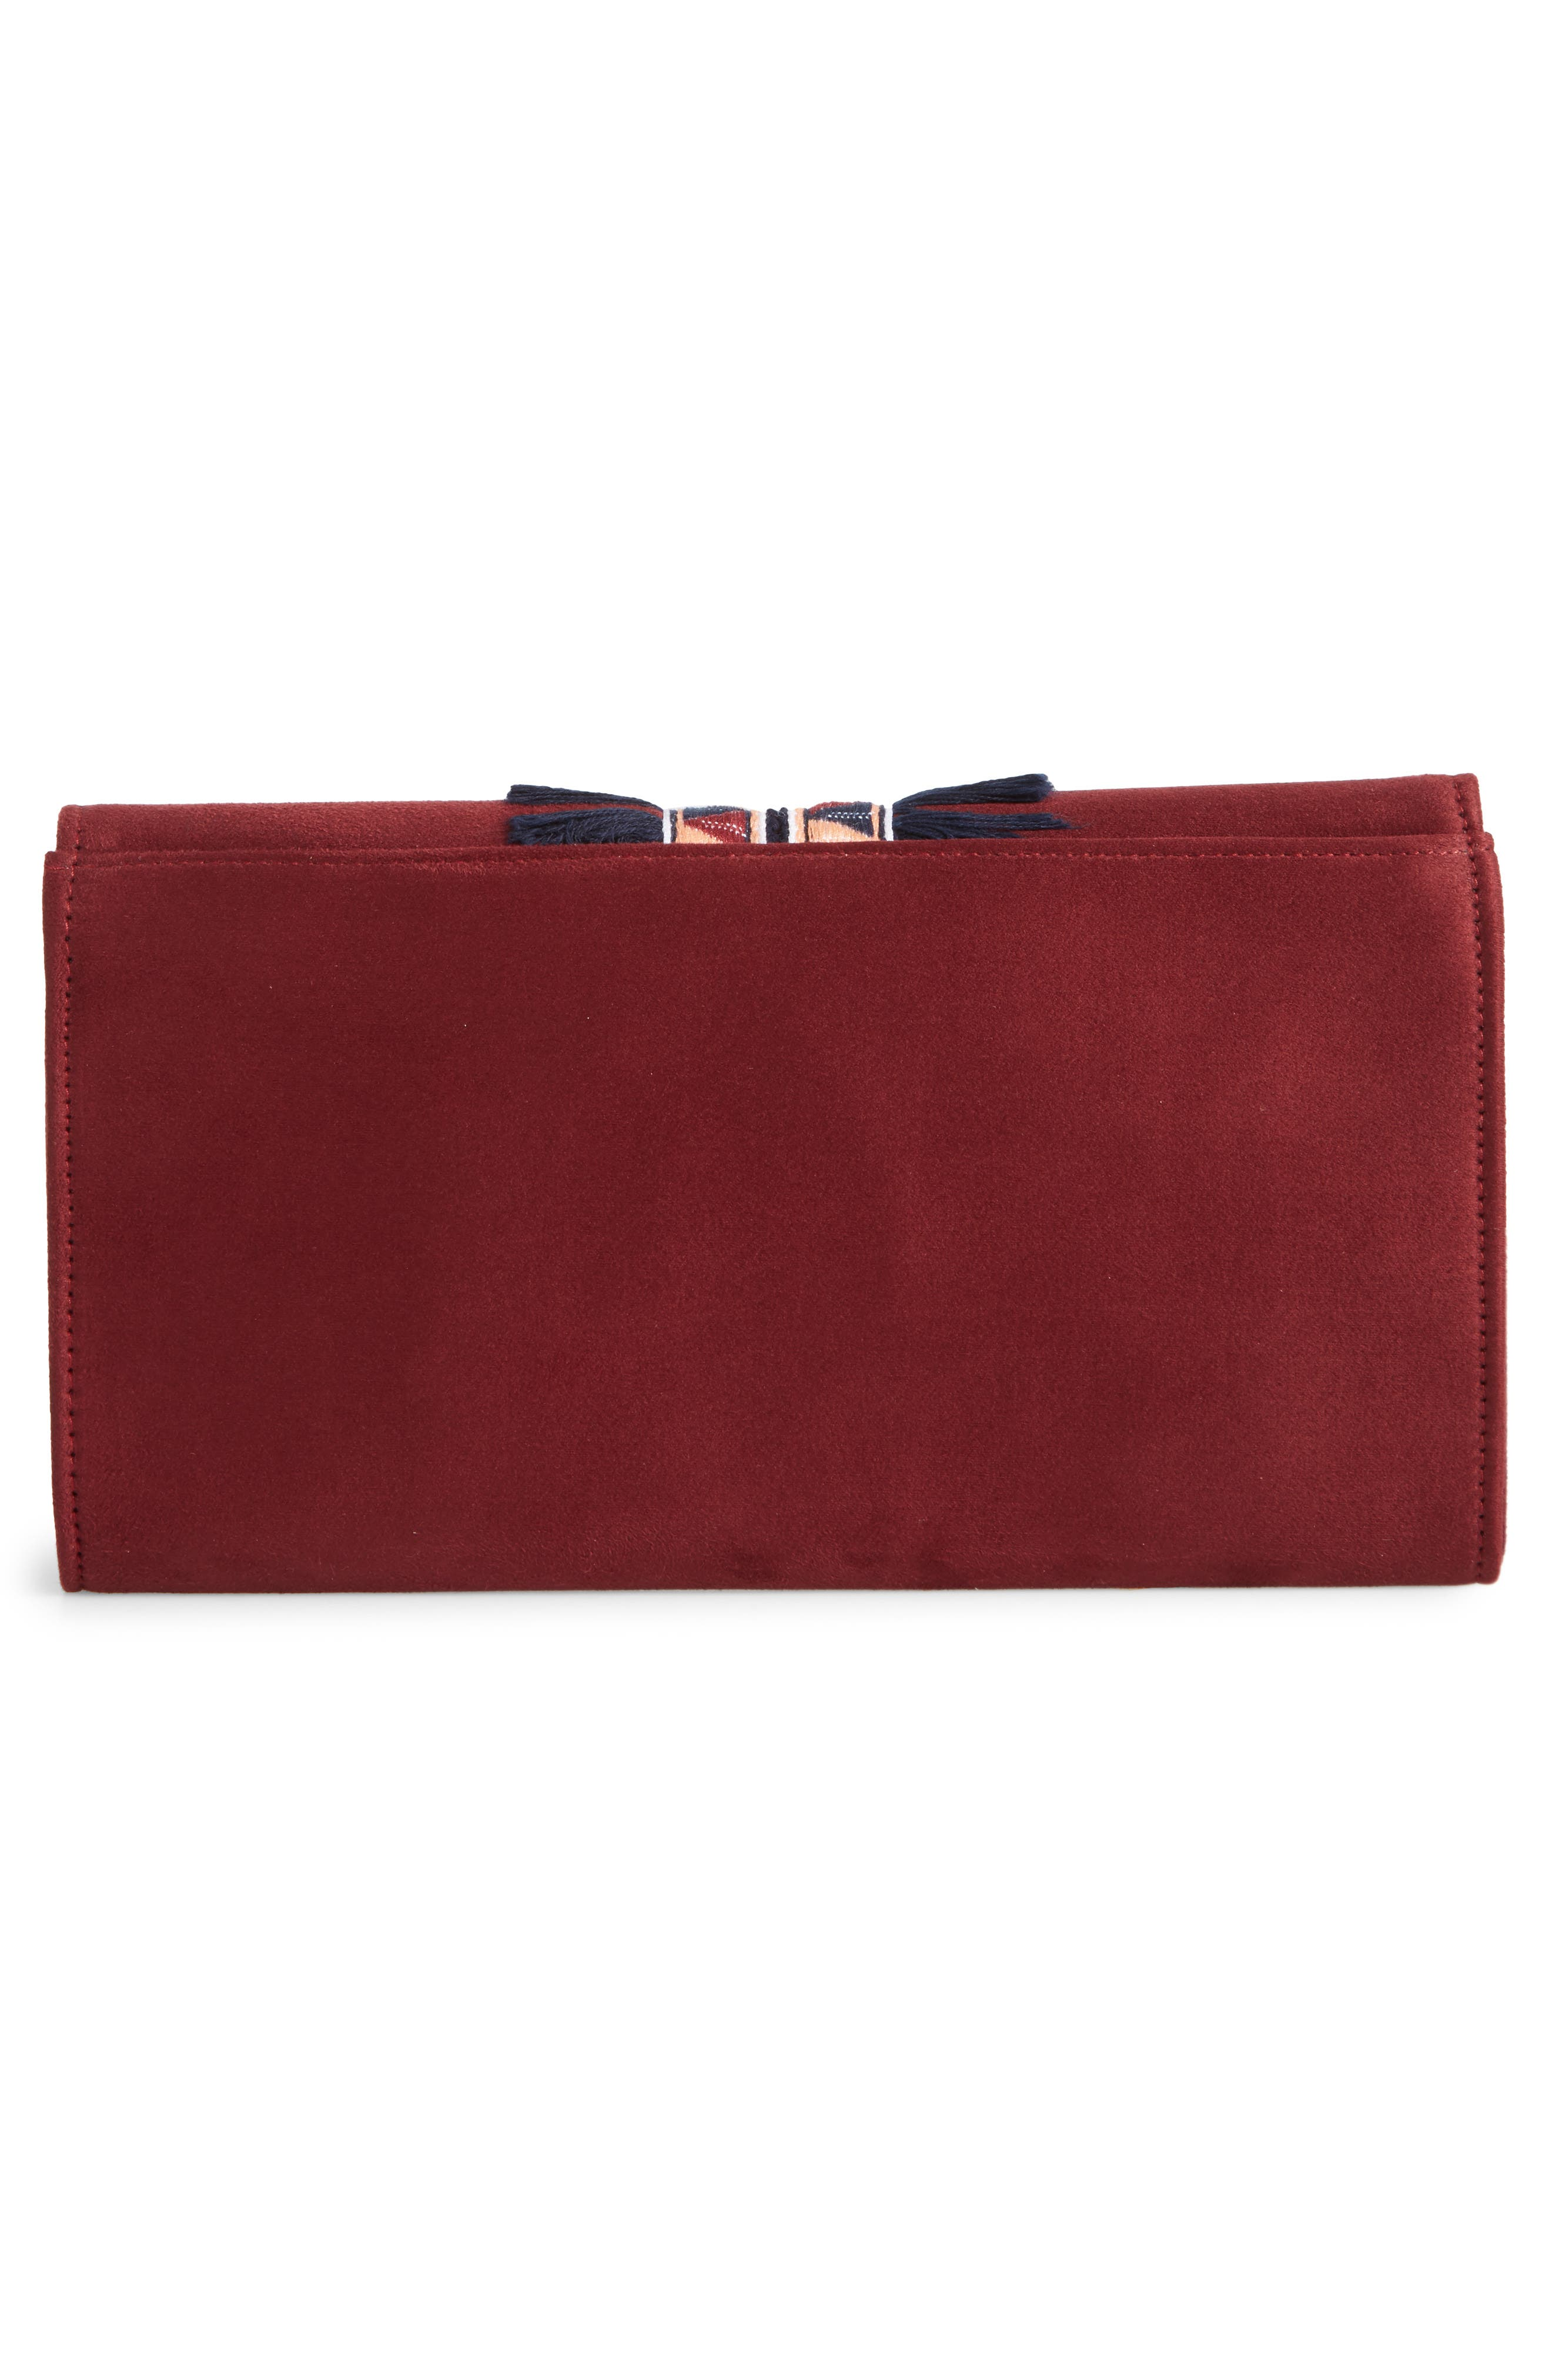 Rada Embroidered Clutch,                             Alternate thumbnail 6, color,